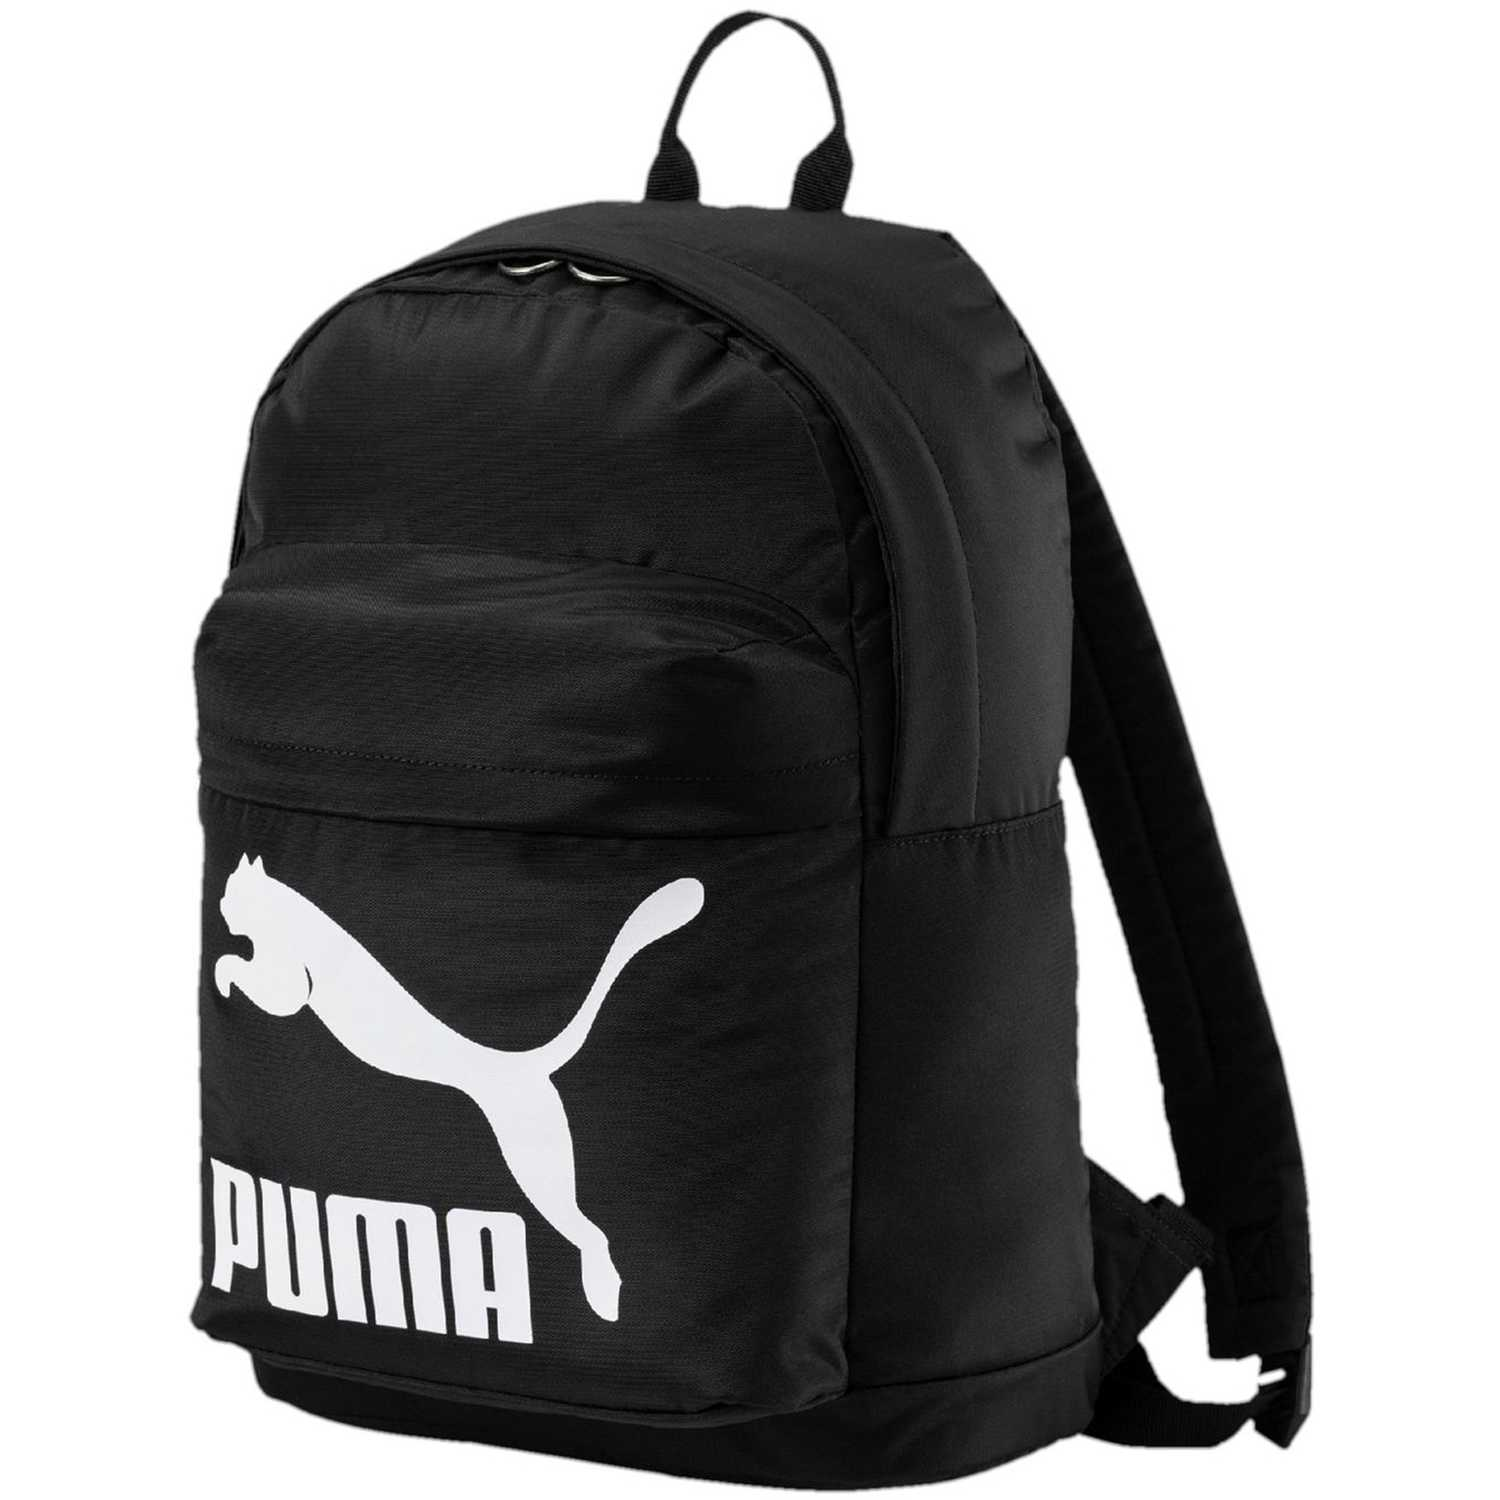 Cartucheras de Niño Puma Negro / blanco originals backpack